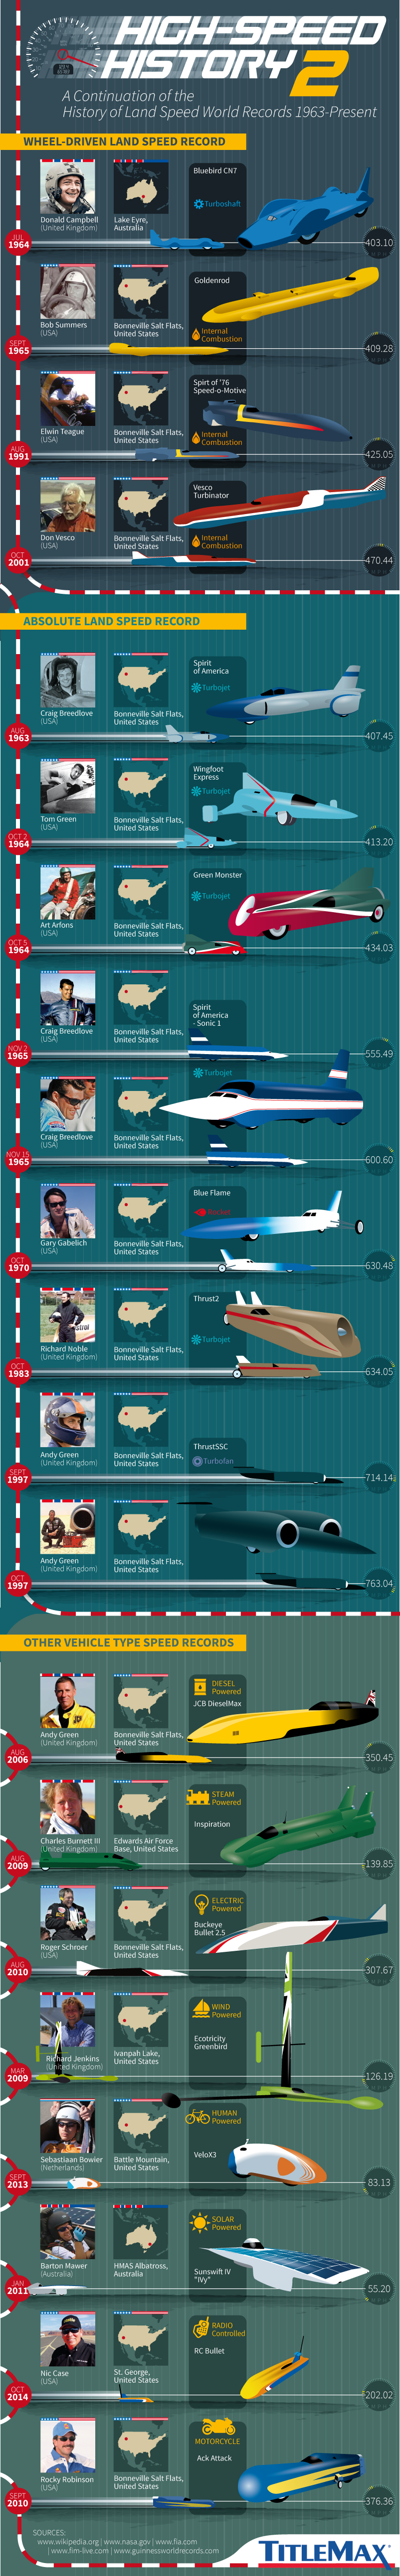 High-Speed History 2: Landspeed World Records from 1963-Present #infographic